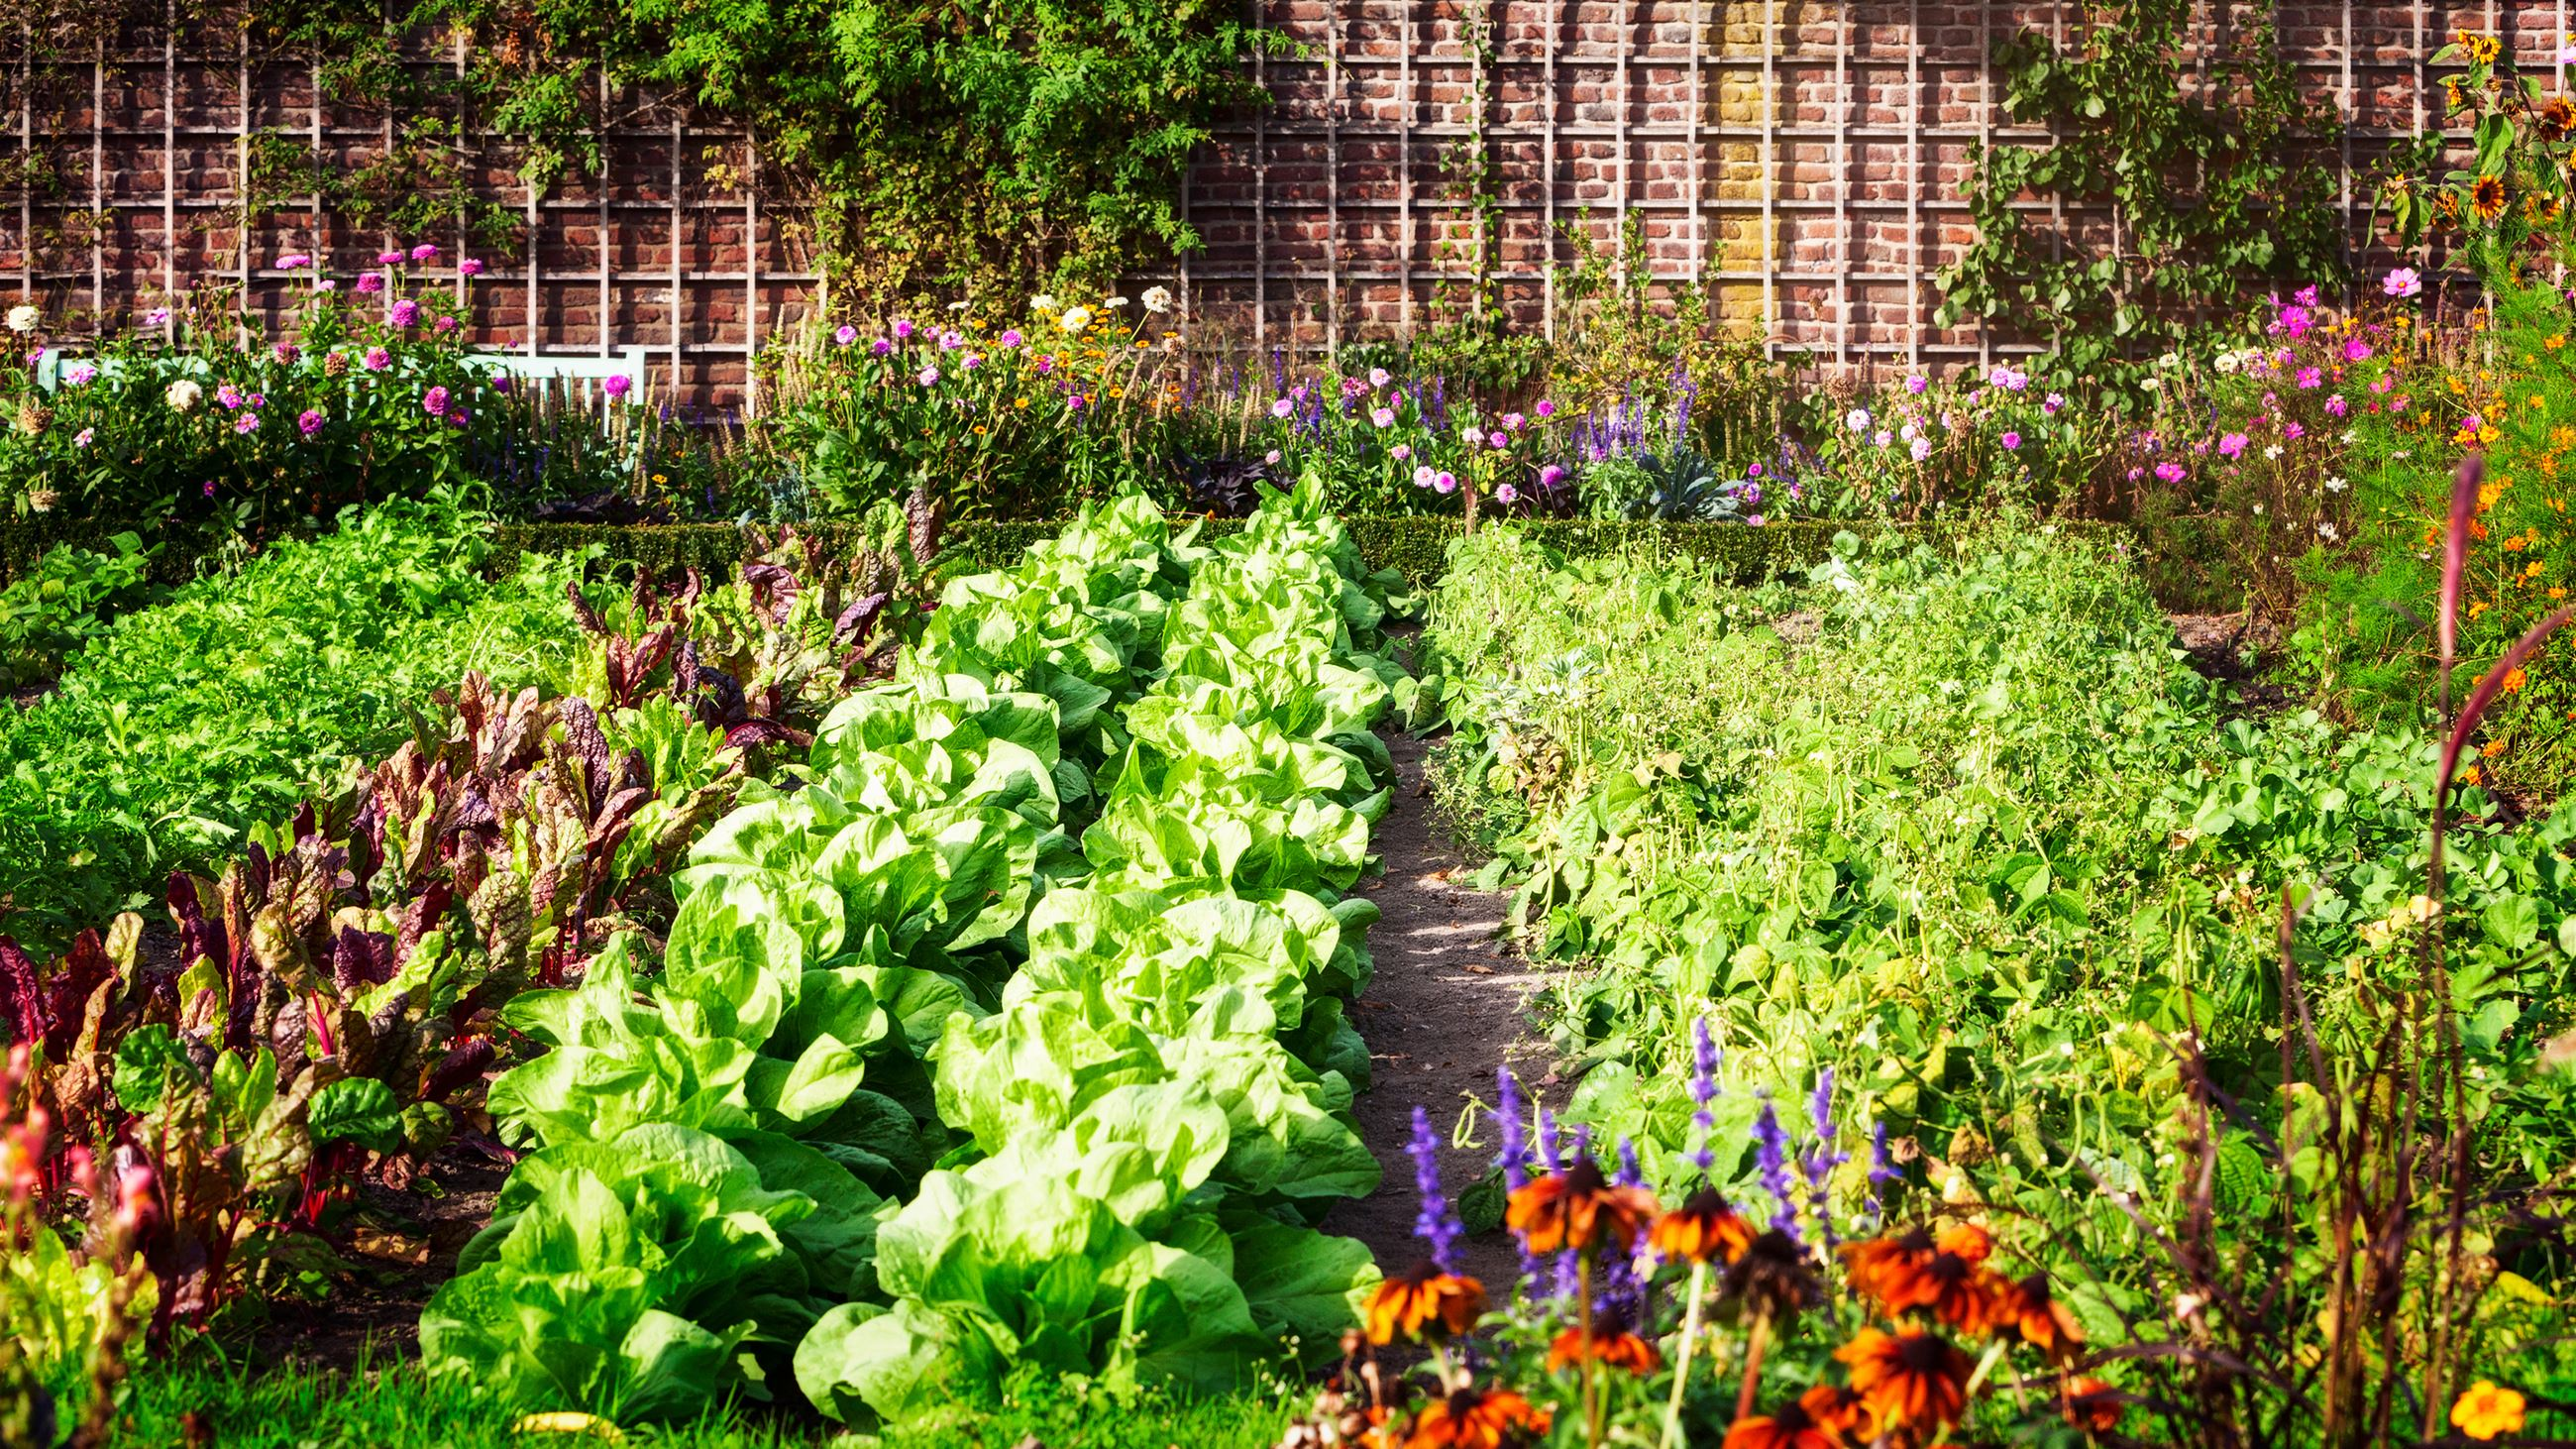 bigstock-Vegetable-Garden-In-Late-Summe-256424179